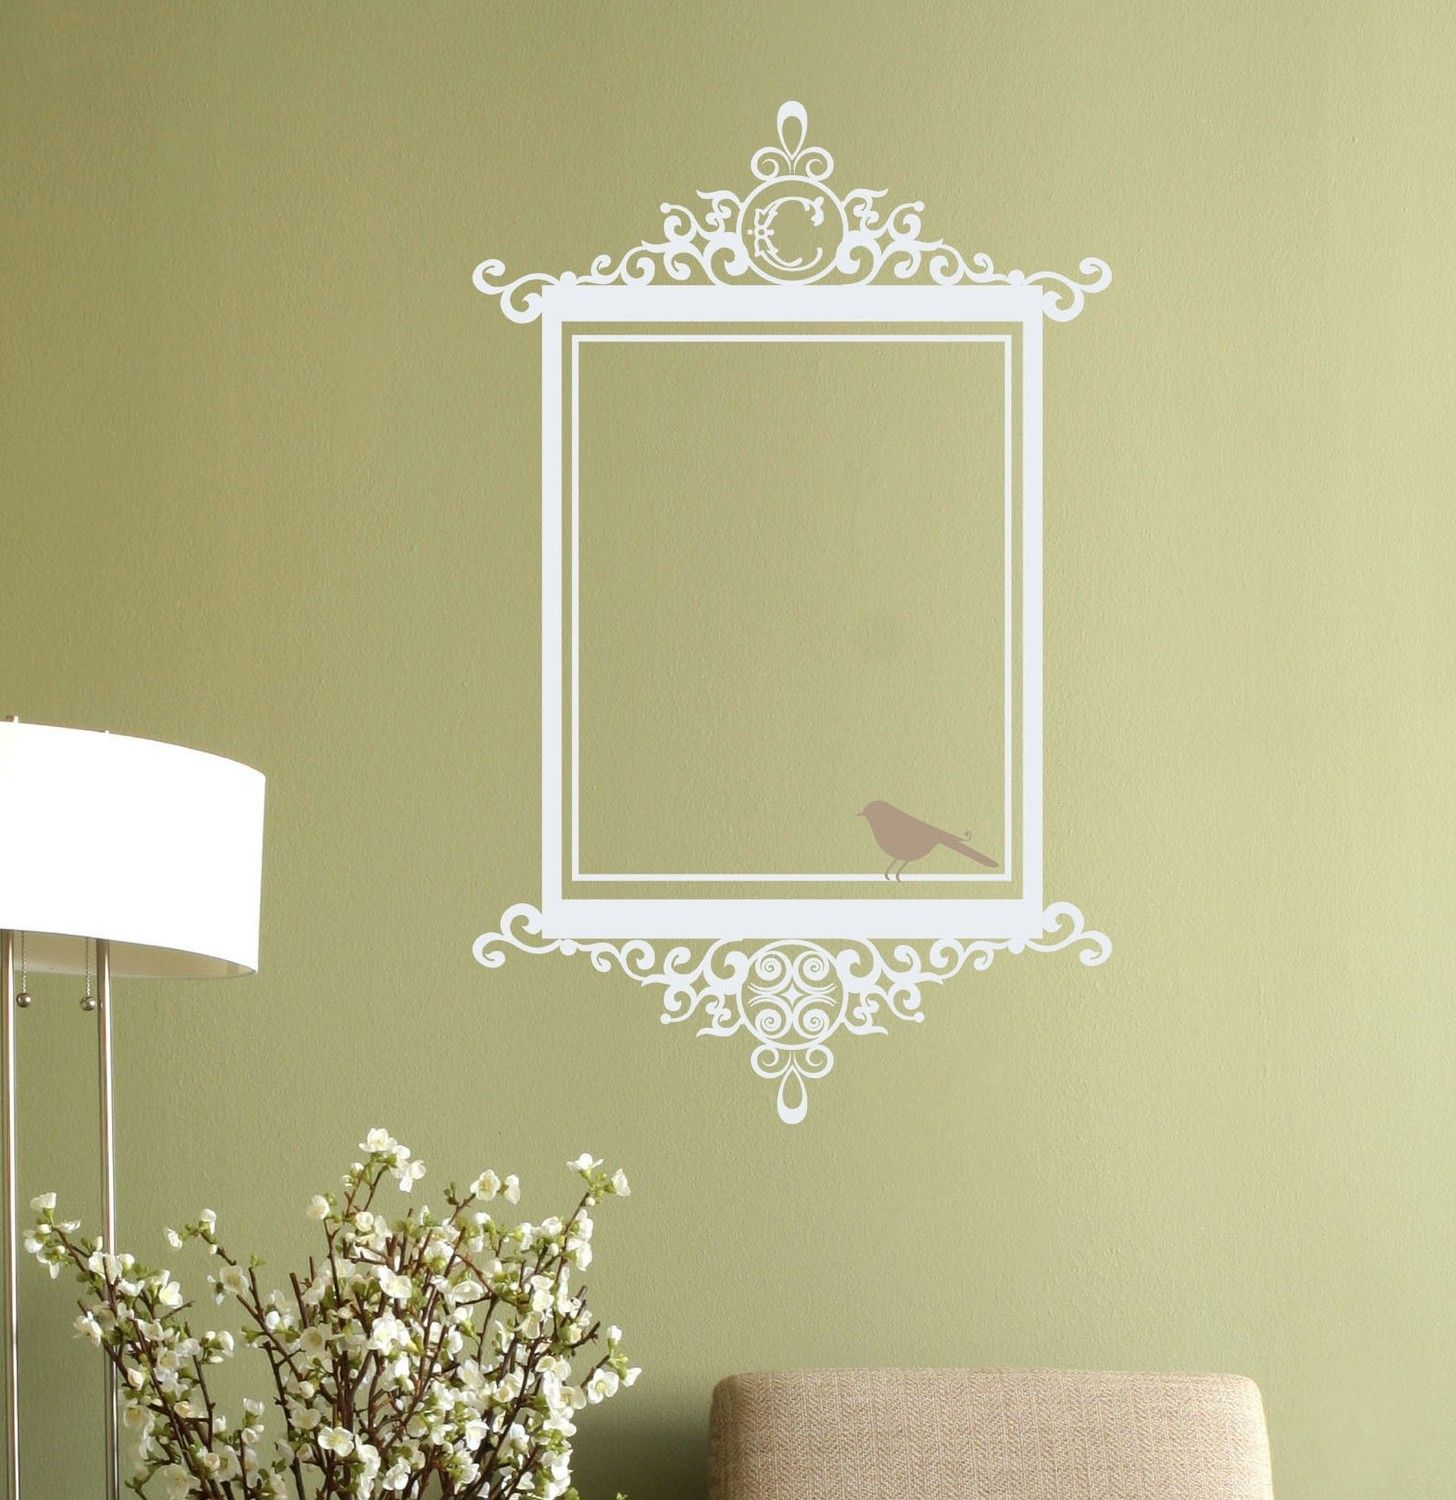 painted wall picture frames - Google Search | Frames | Pinterest ...